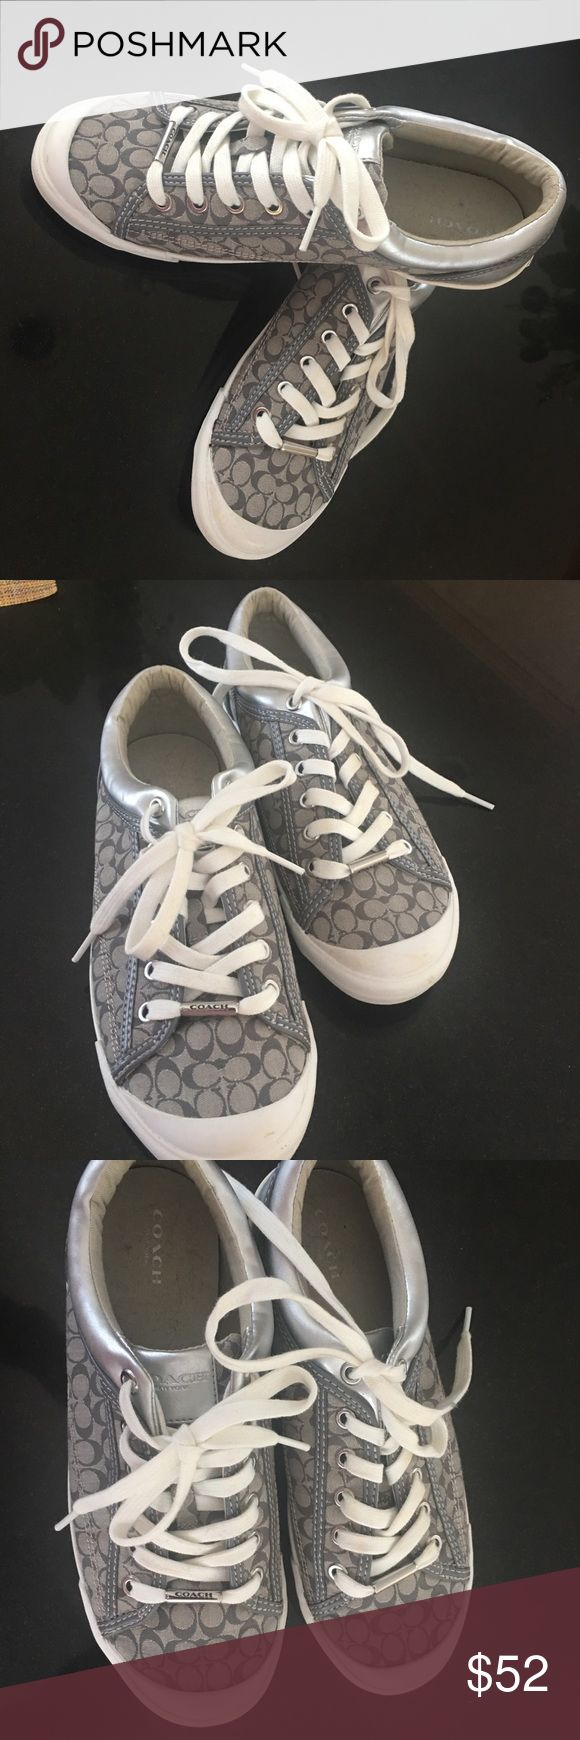 Used once - Grey and white Coach sneakers Grey and white Coach sneakers with a splash of silver. Worn only one time. Super comfy! Coach Shoes Sneakers